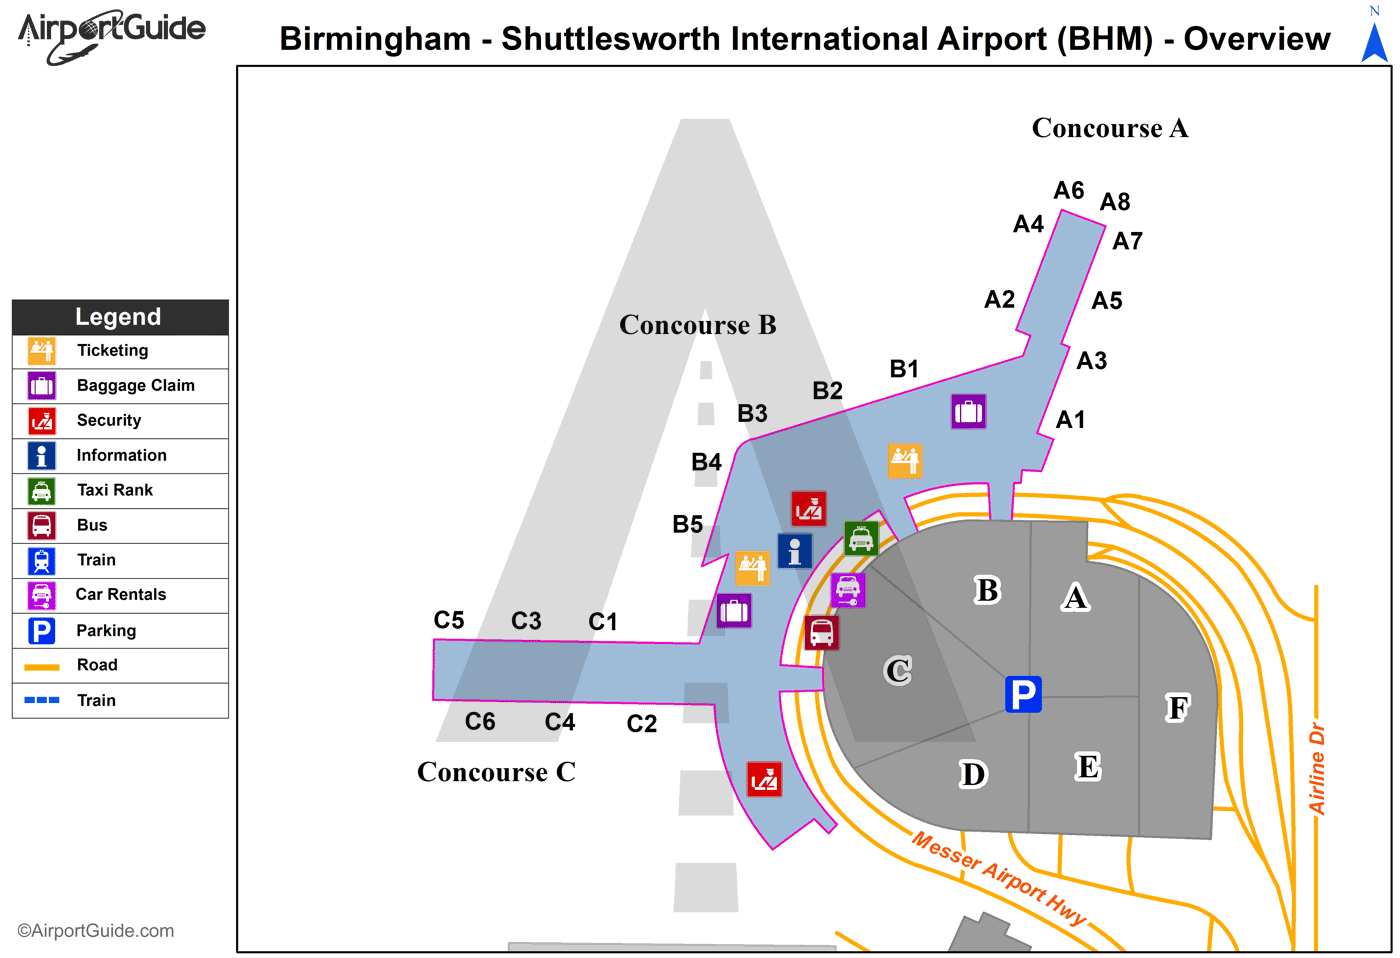 Birmingham - Birmingham-Shuttlesworth International (BHM) Airport Terminal Map - Overview